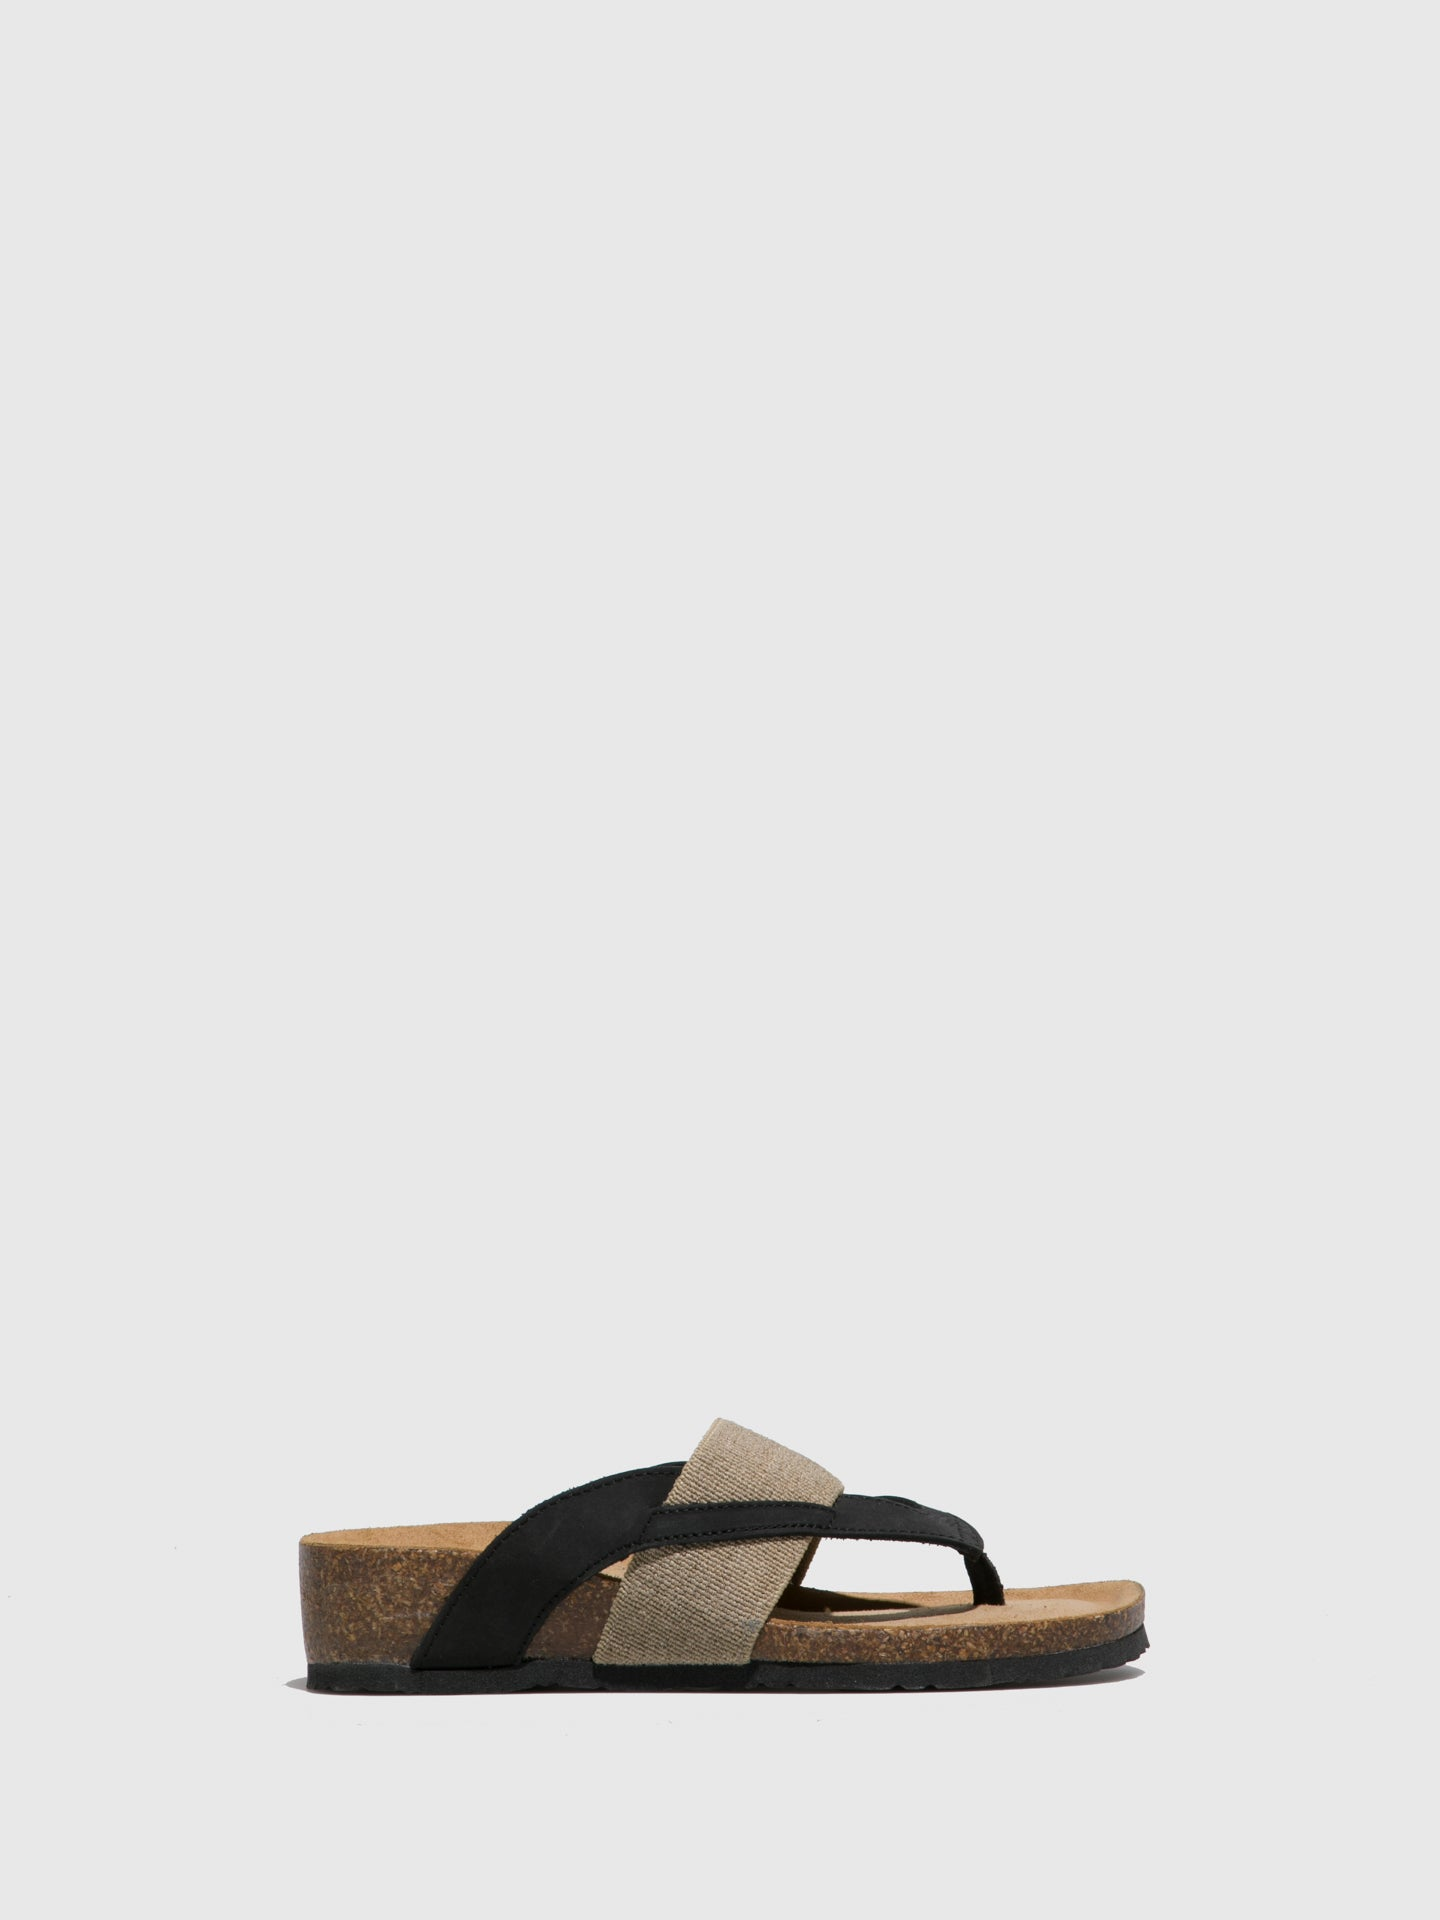 Bos&Co Tan Black Thong Flip-Flops